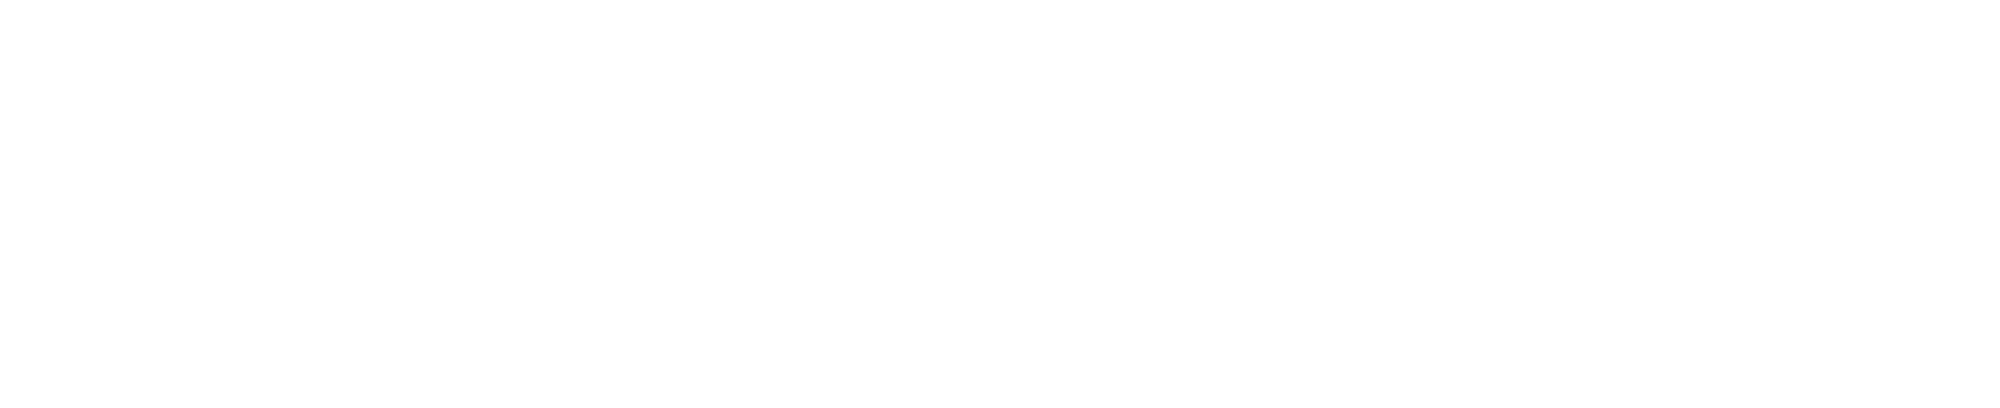 Logo RSCONCEPT Rally Racing Services